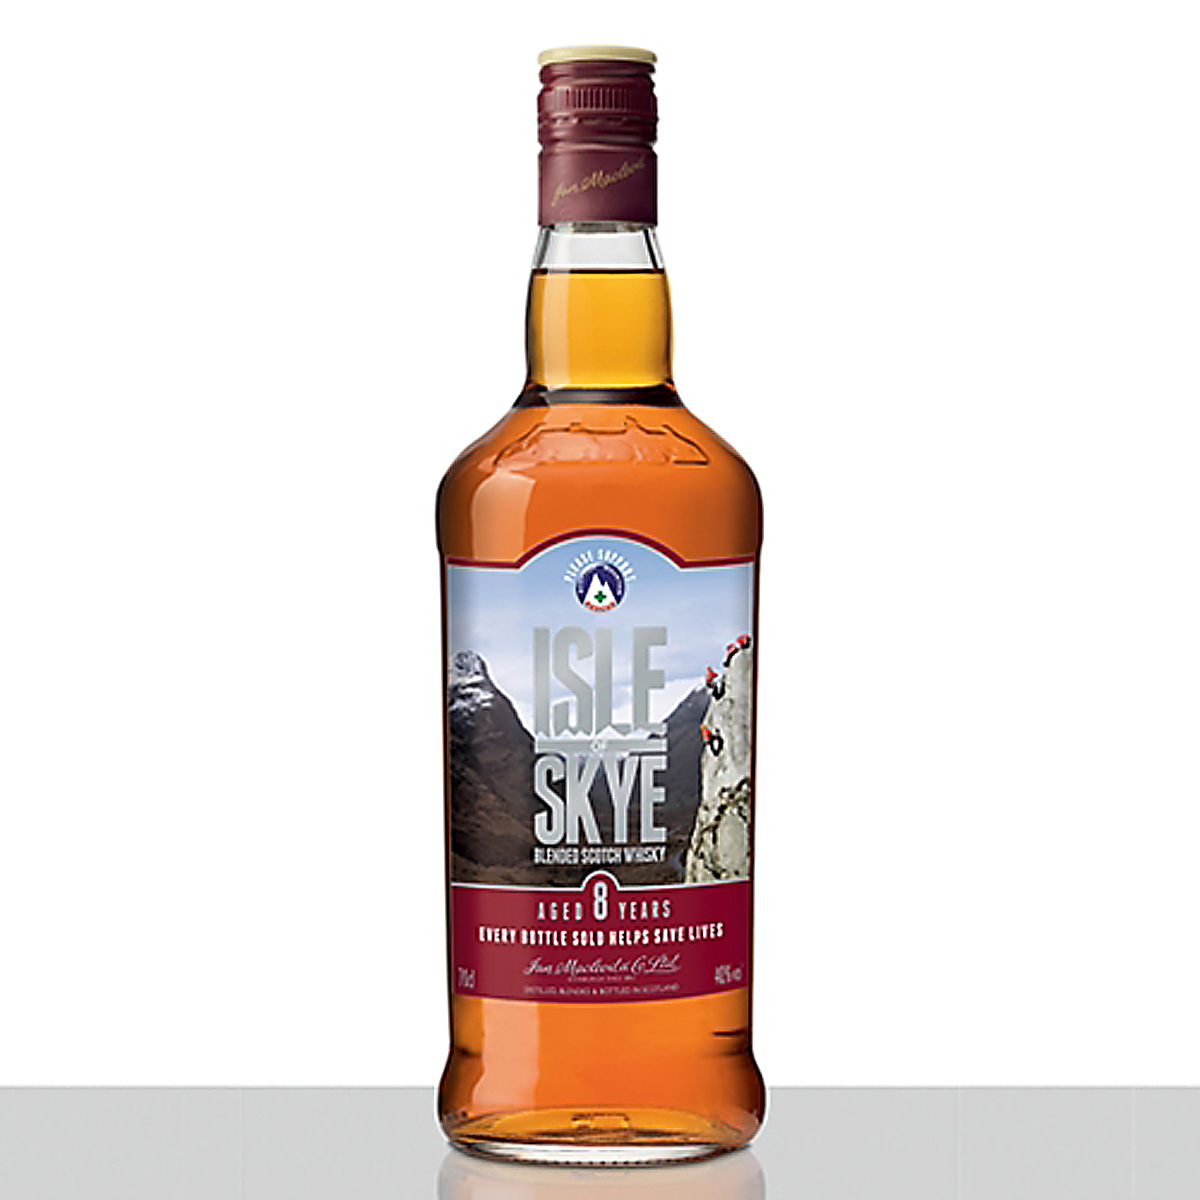 ISLE OF SKYE 70cl 8 Y/O 40%